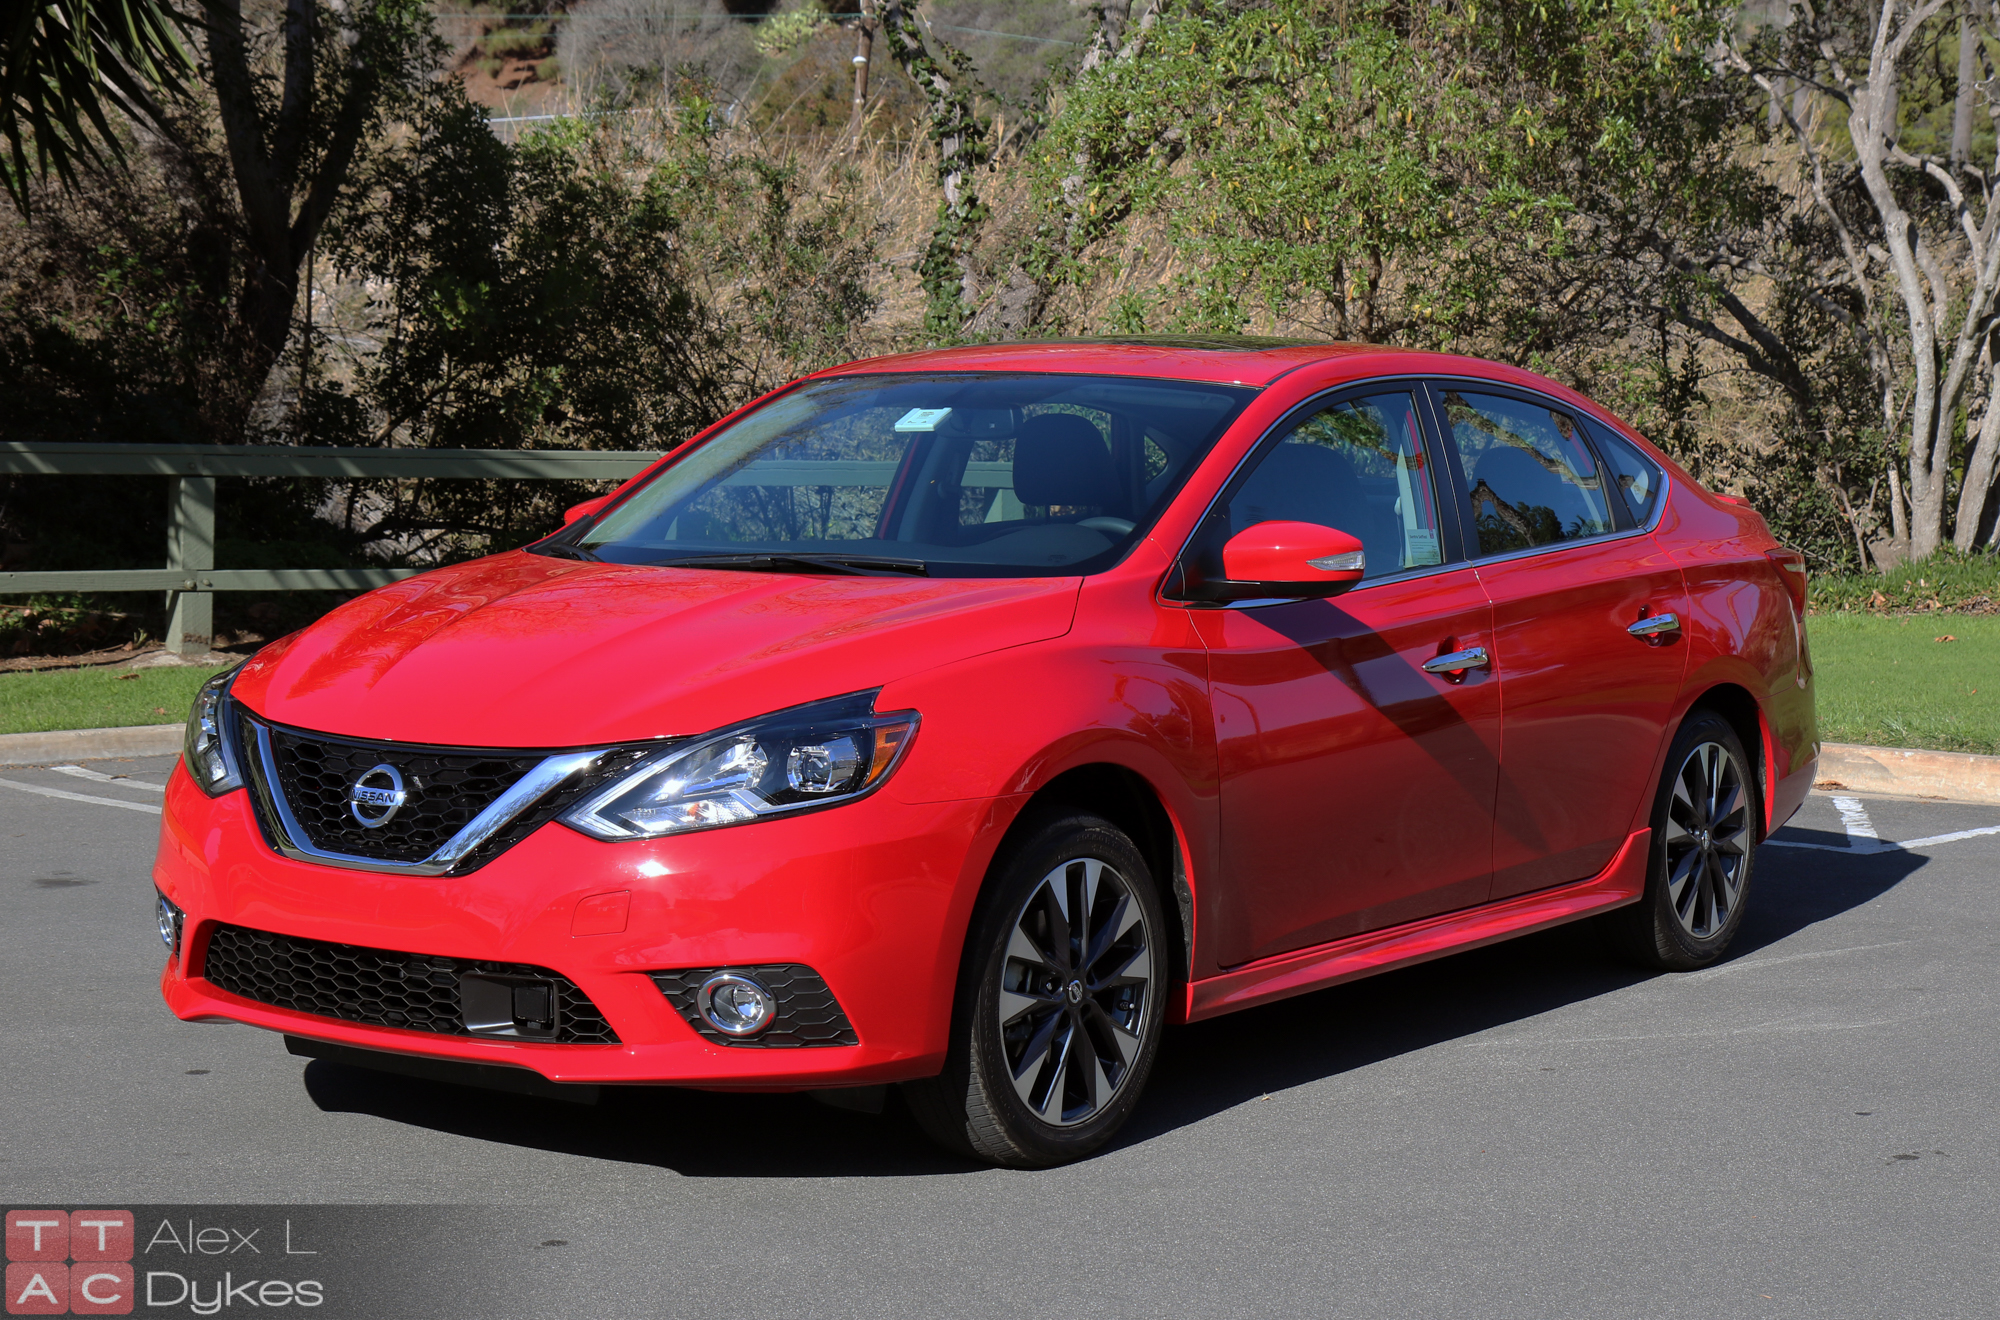 2016 Nissan Sentra Sv >> 2016 Nissan Sentra Review - Nissan's Compact Goes Premium